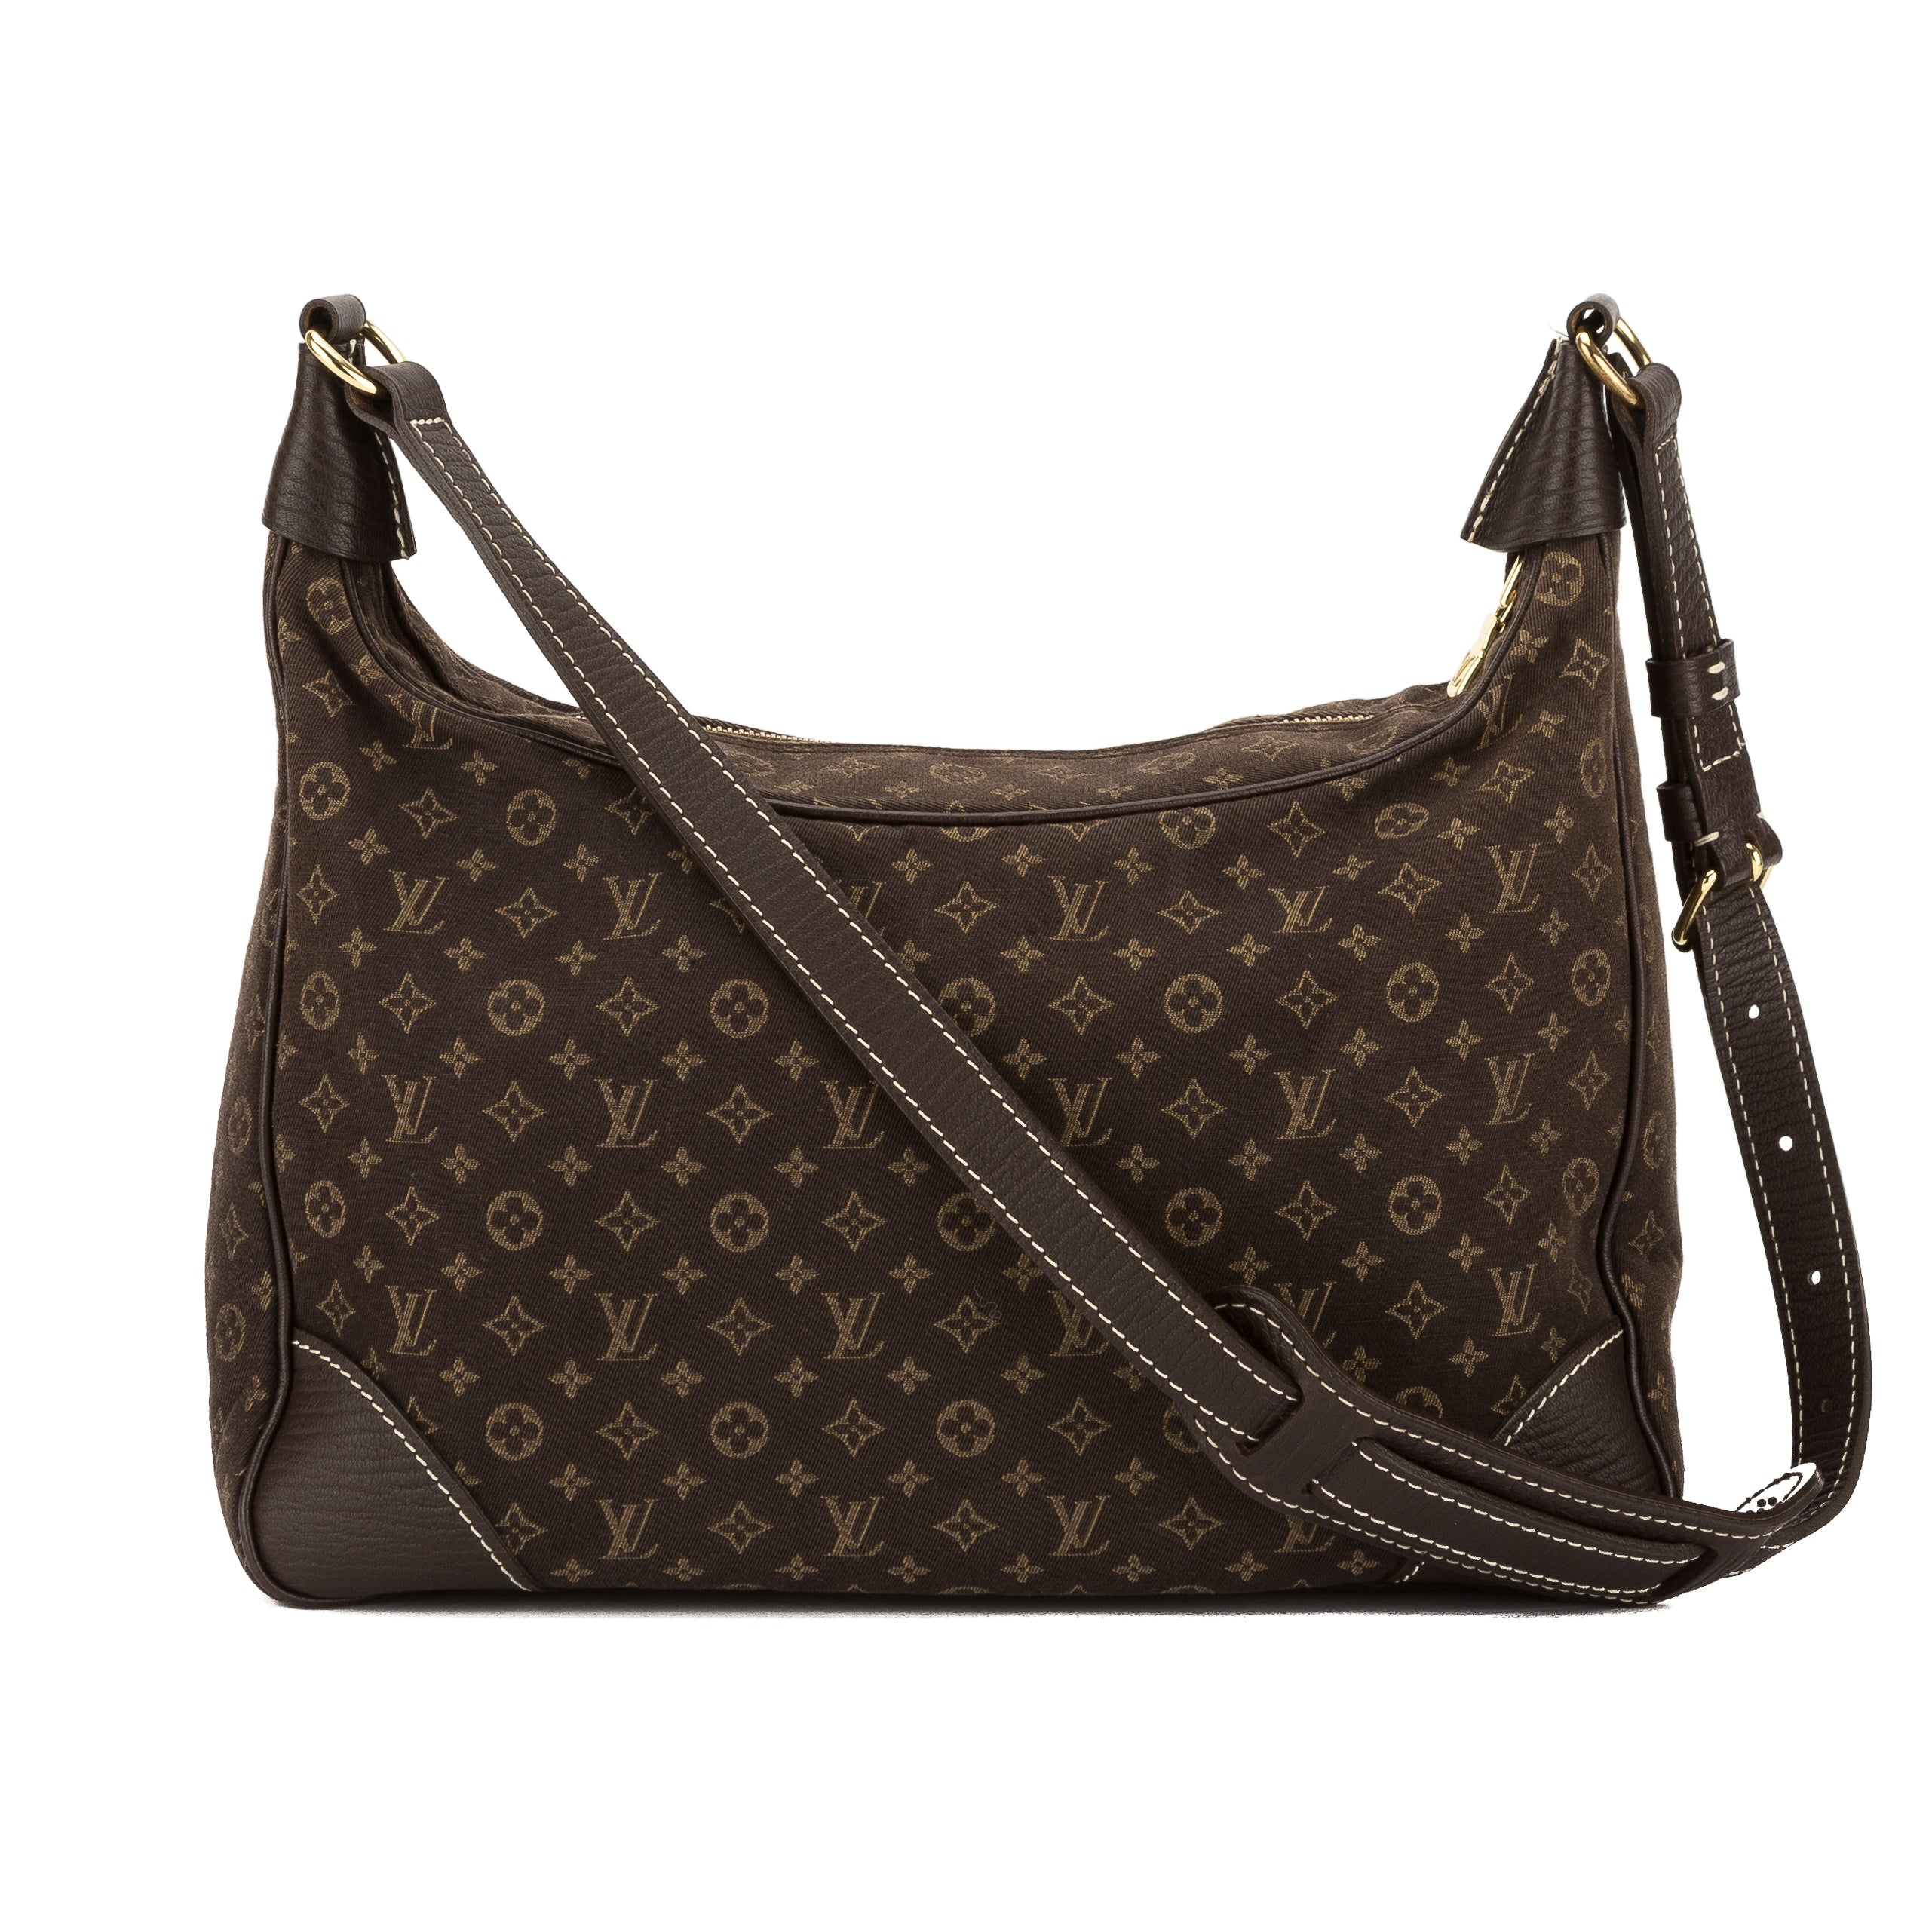 Louis Vuitton Ebene Monogram Mini Lin Canvas Boulogne Bag (Pre Owned ... dccfe4faa4ca1